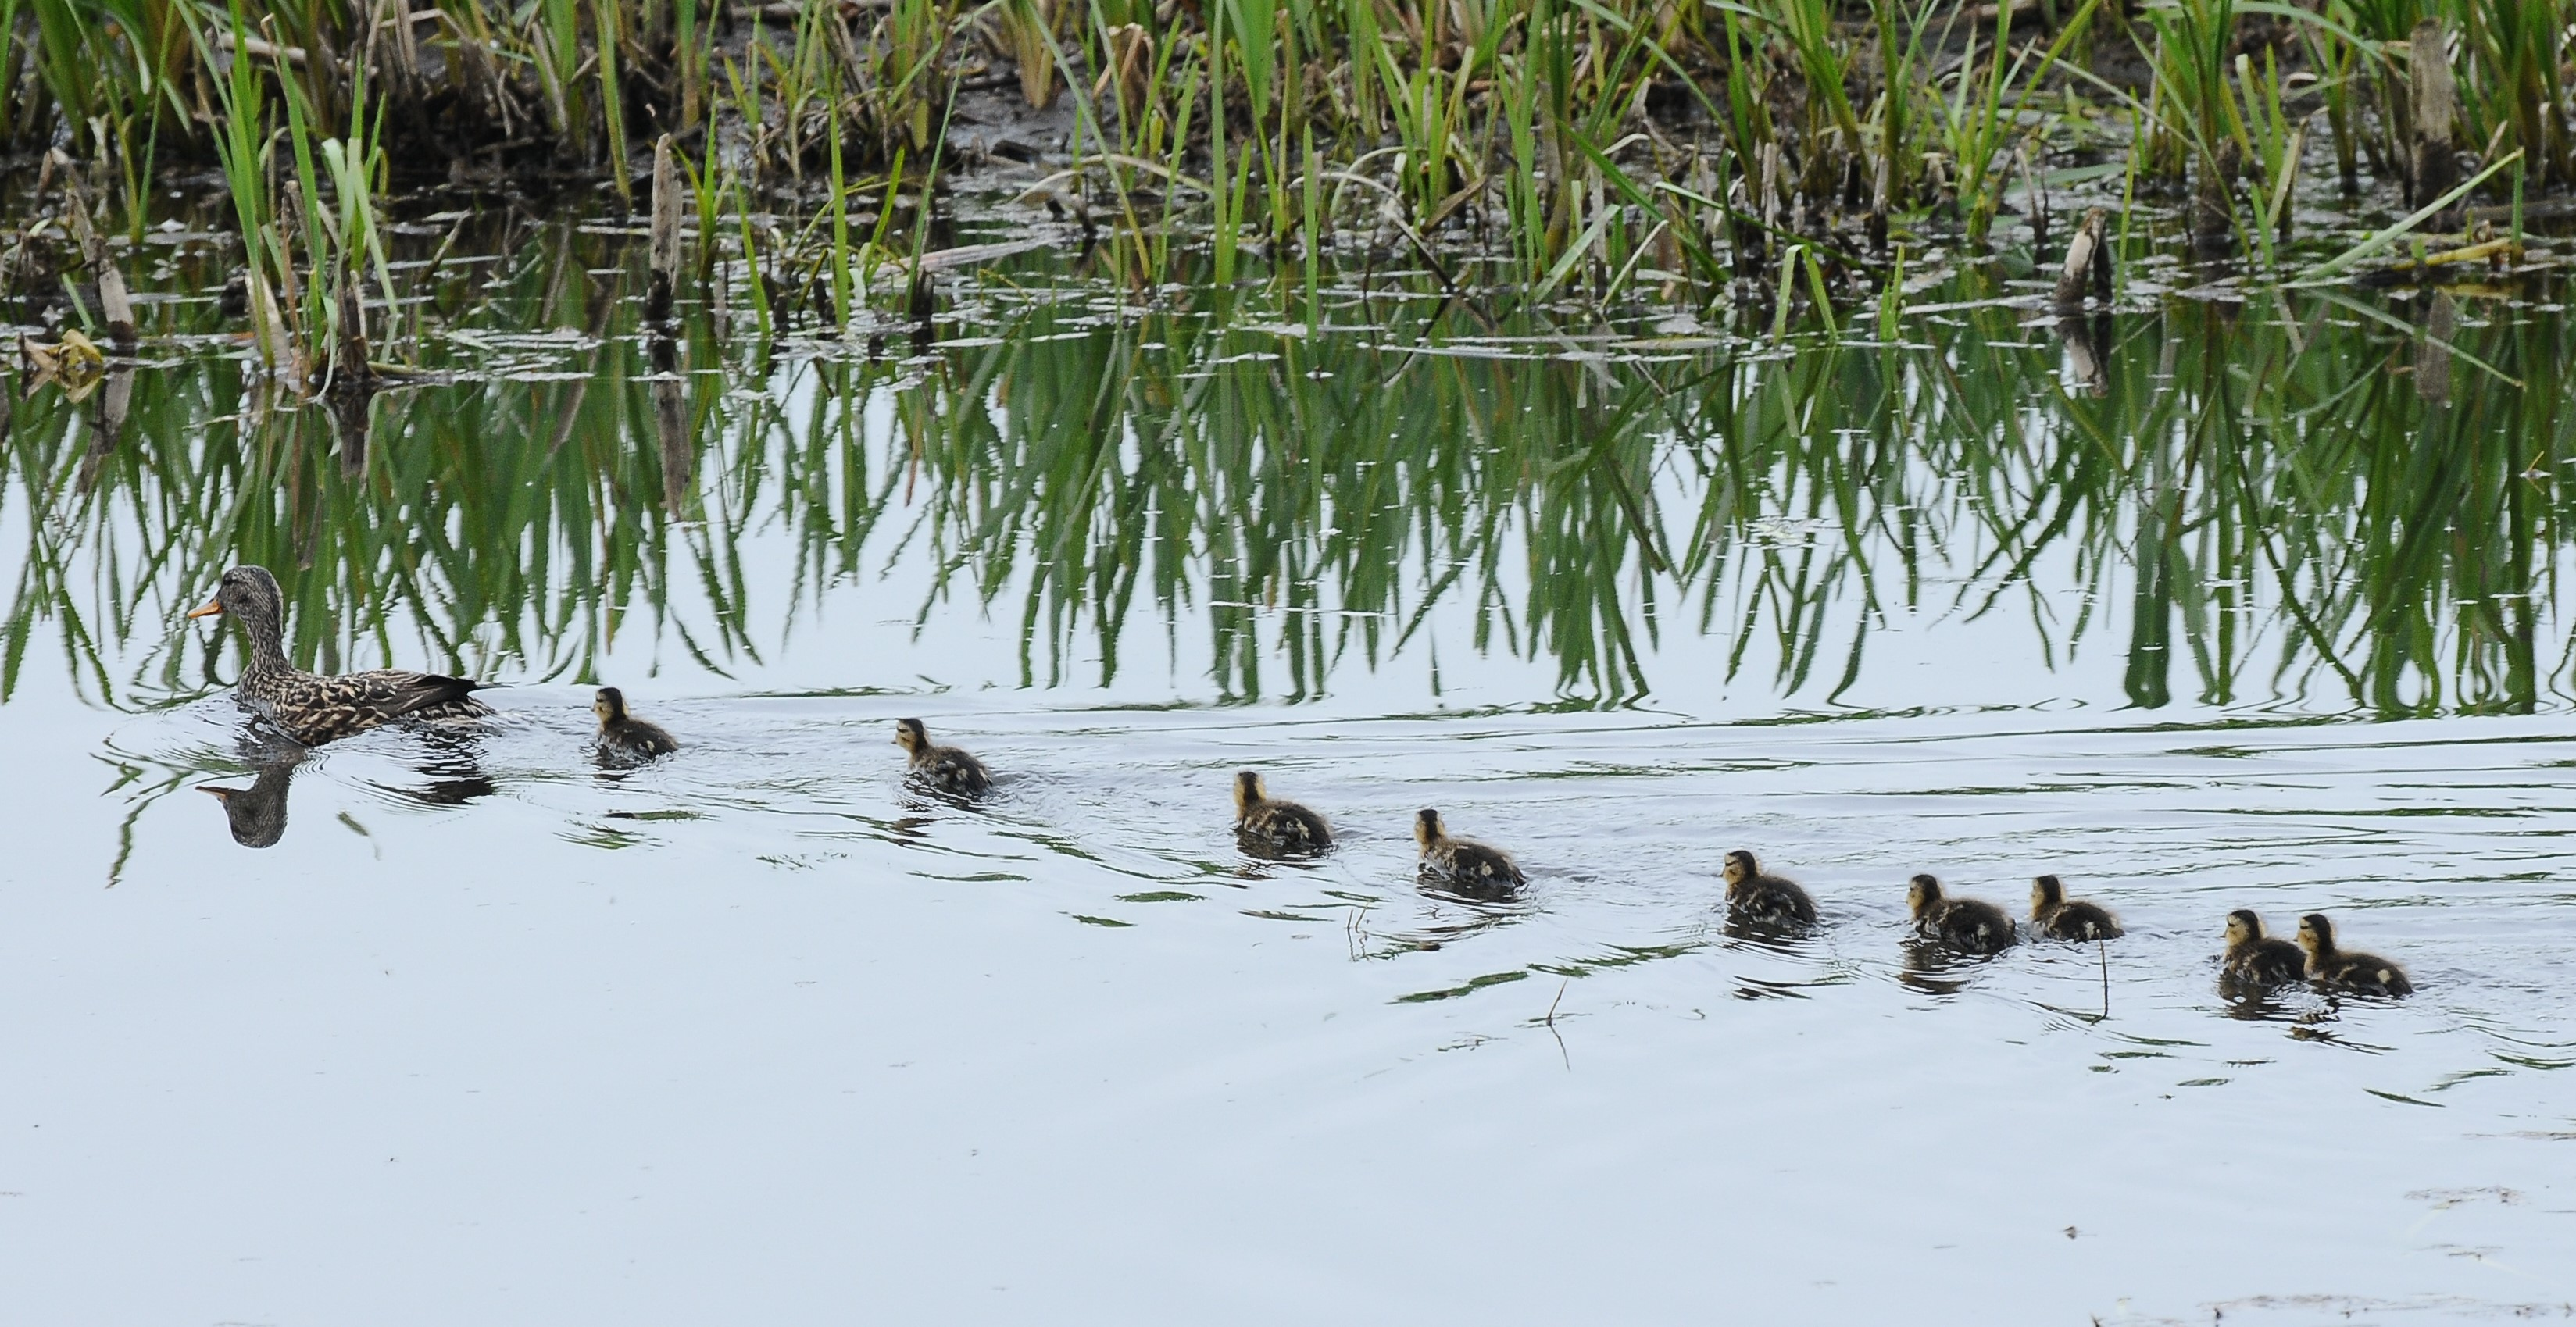 nine ducklings swimming behind a duck with a green reed bed in the distance